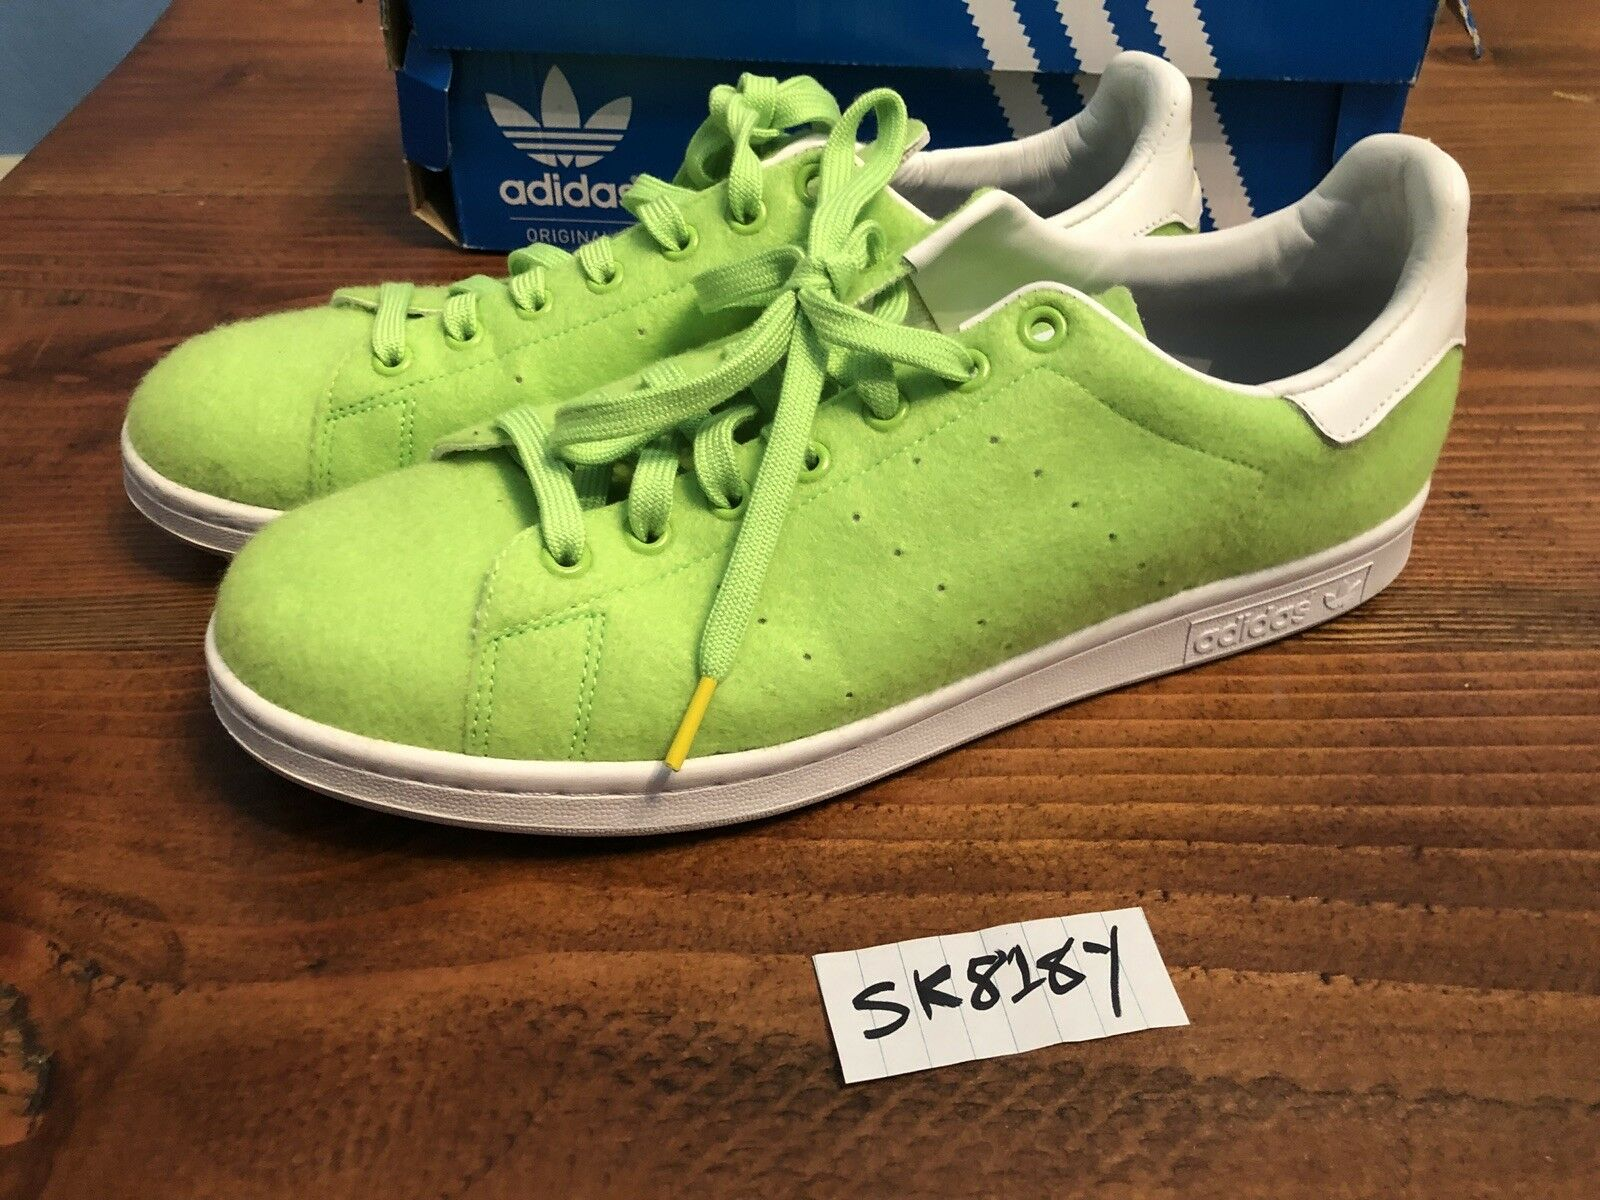 ADIDAS x PHARRELL WILLIAMS TENNIS BALL PACK STAN SMITH GREEN SNEAKERS Comfortable Casual wild